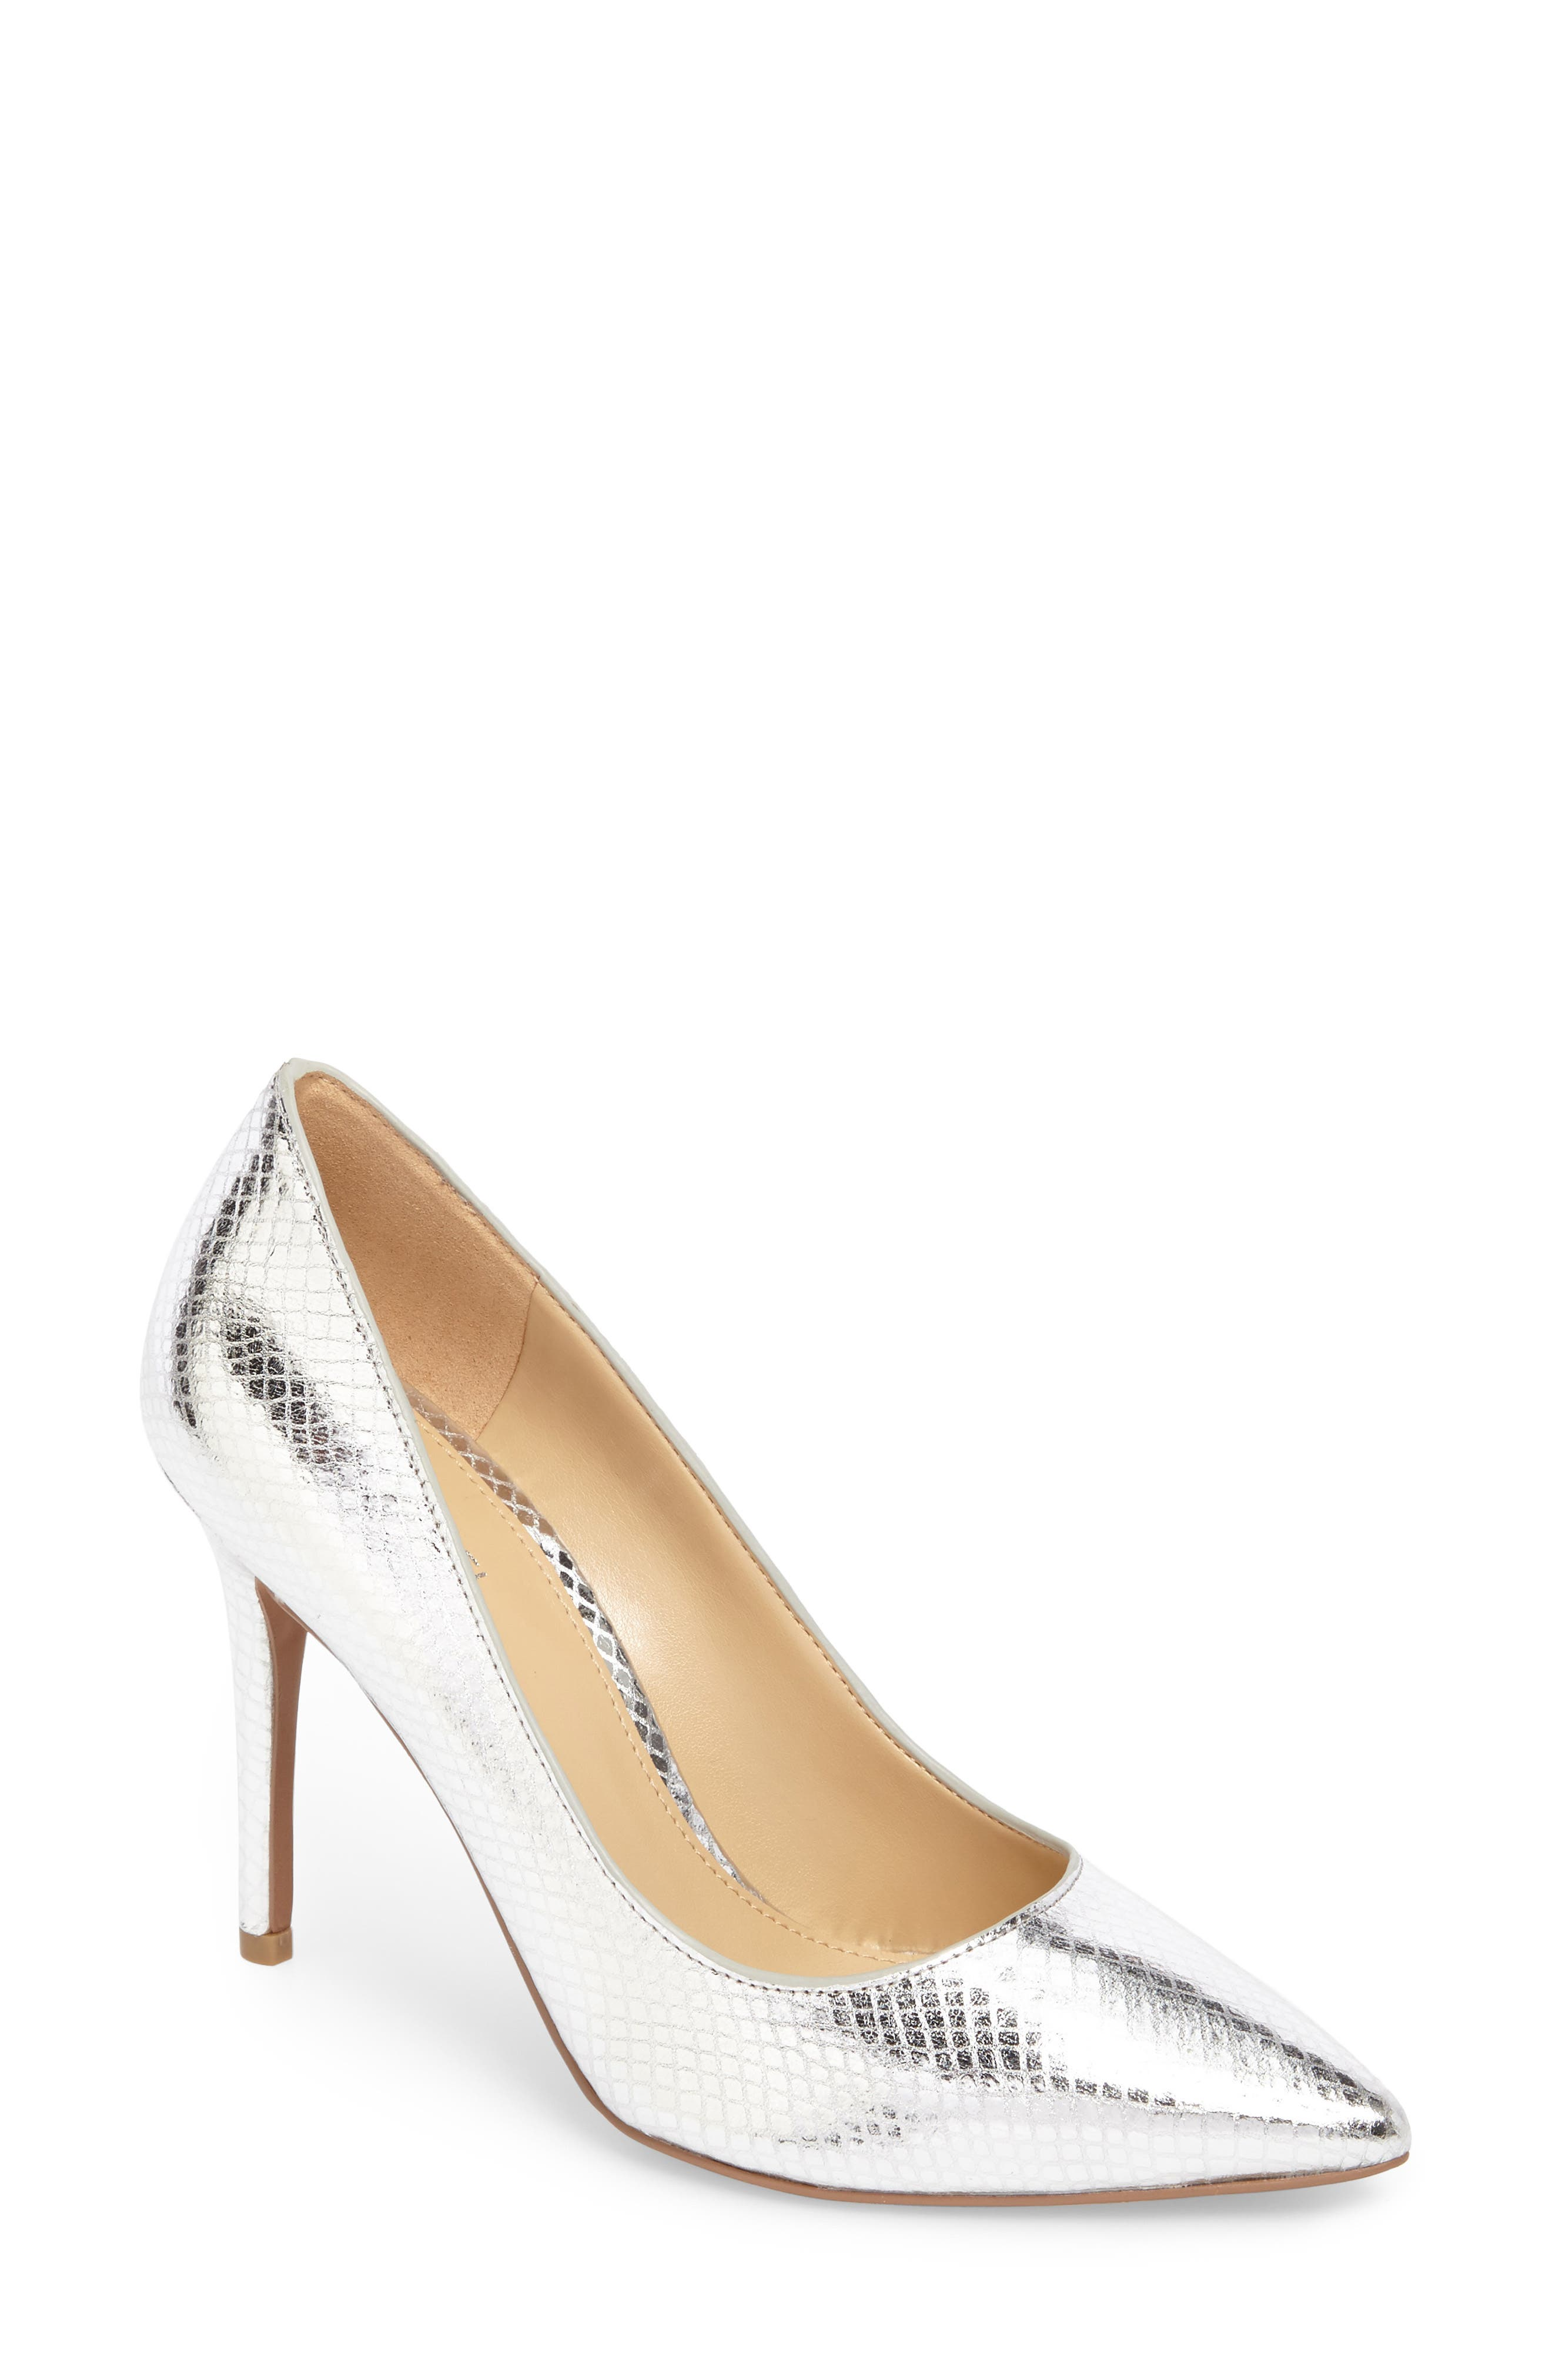 Claire Pointy Toe Pump,                         Main,                         color, 040